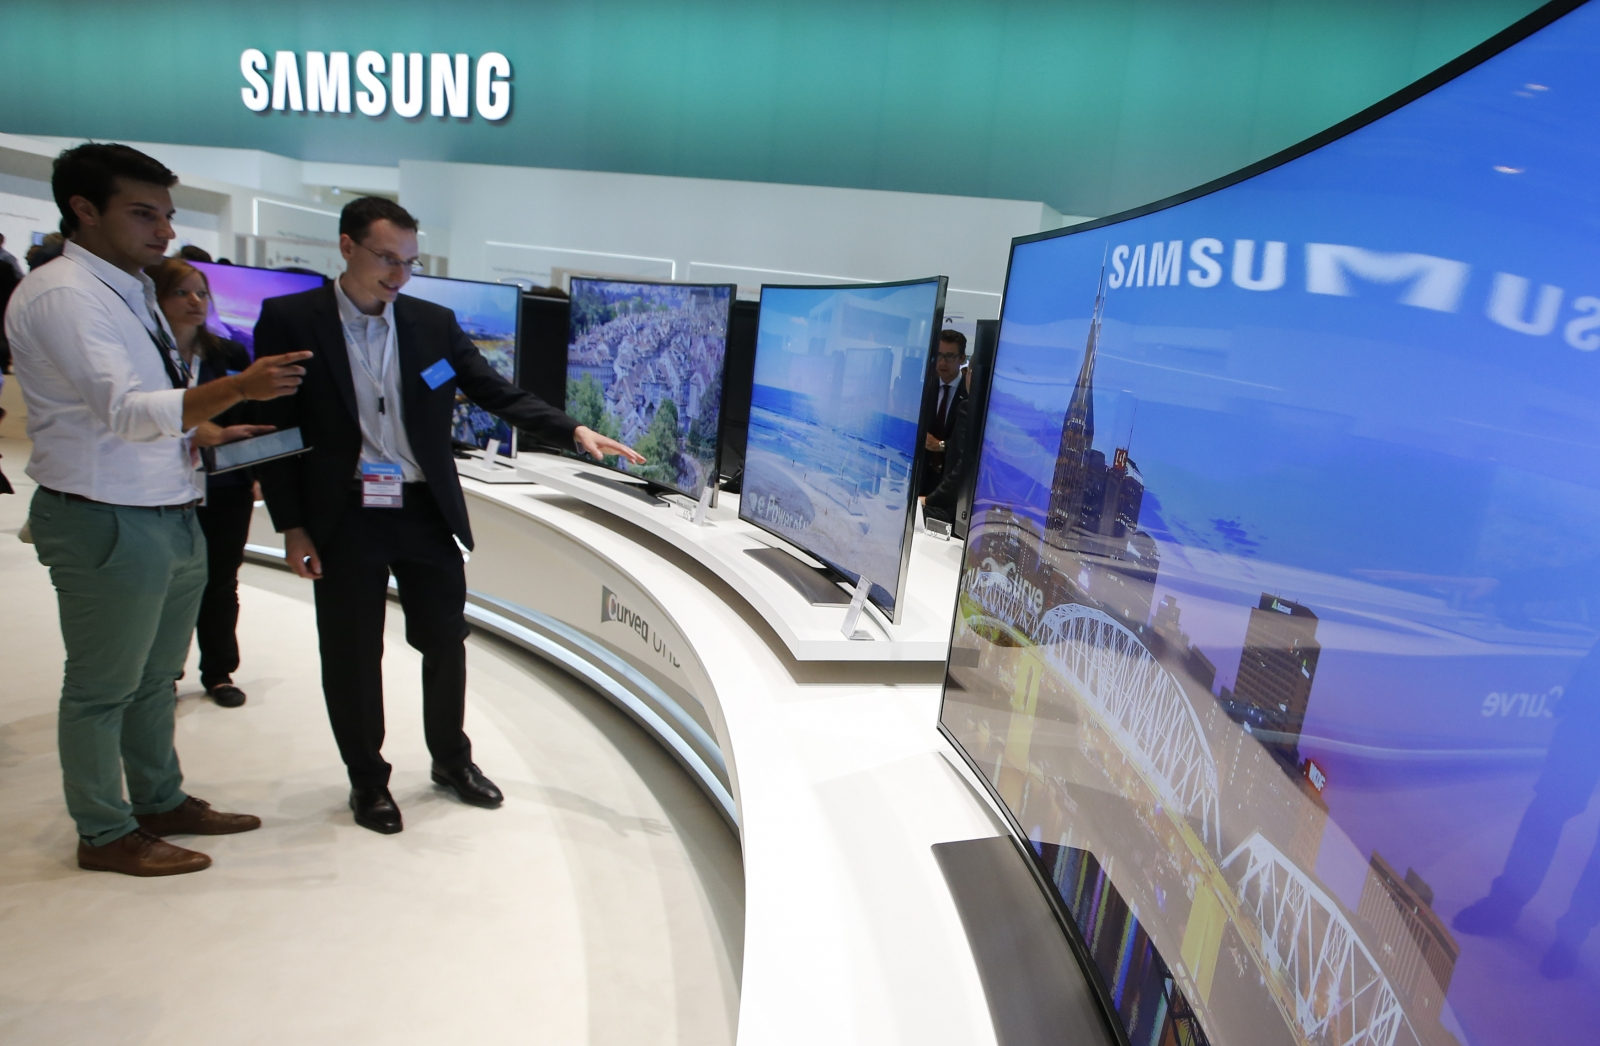 Samsung at IFA Berlin